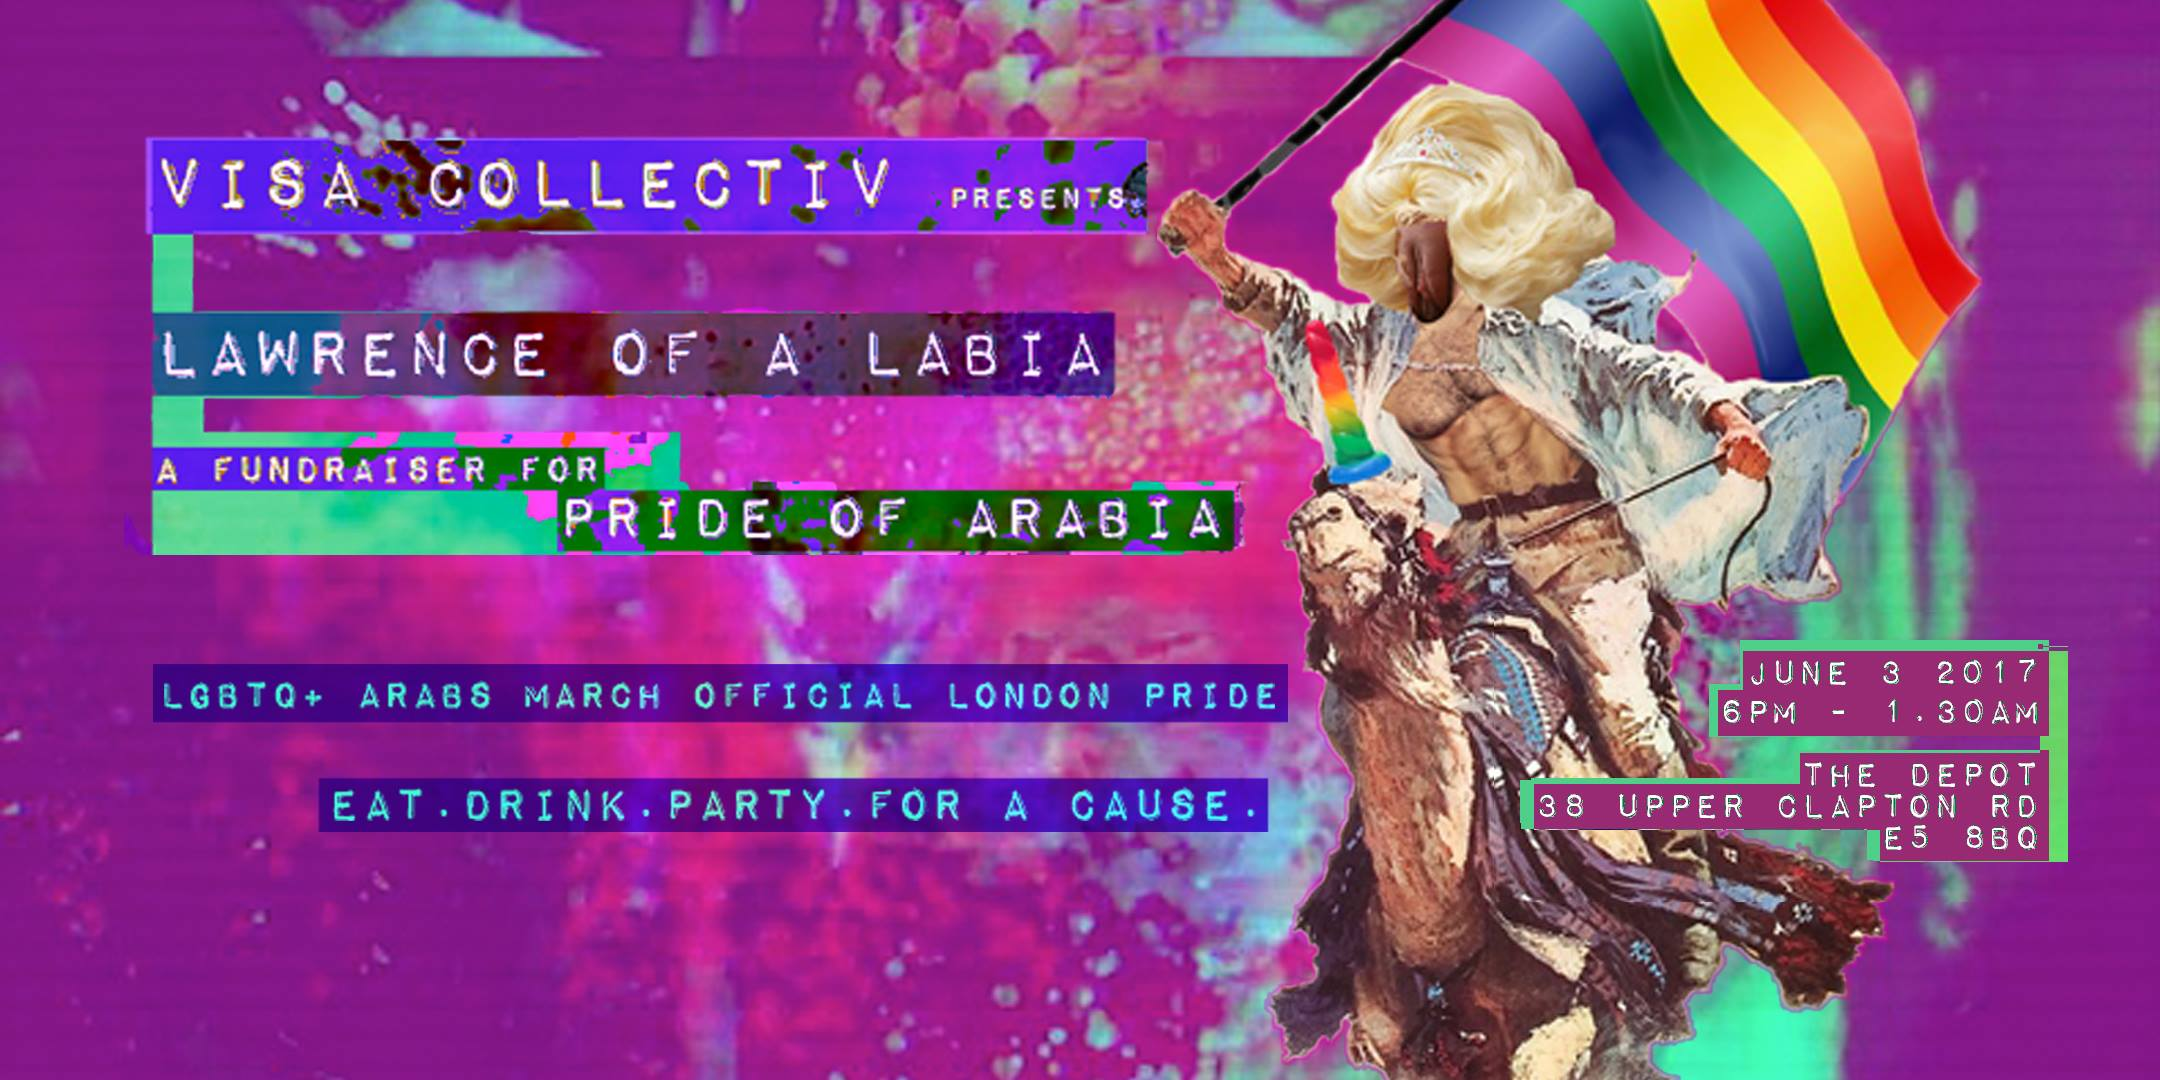 VISA COLLECTIV presents Lawrence of A Labia (fundraiser for PoA) - Saturday, 06.03.2017 The Depot, 38 Upper Clapton Rd, E5